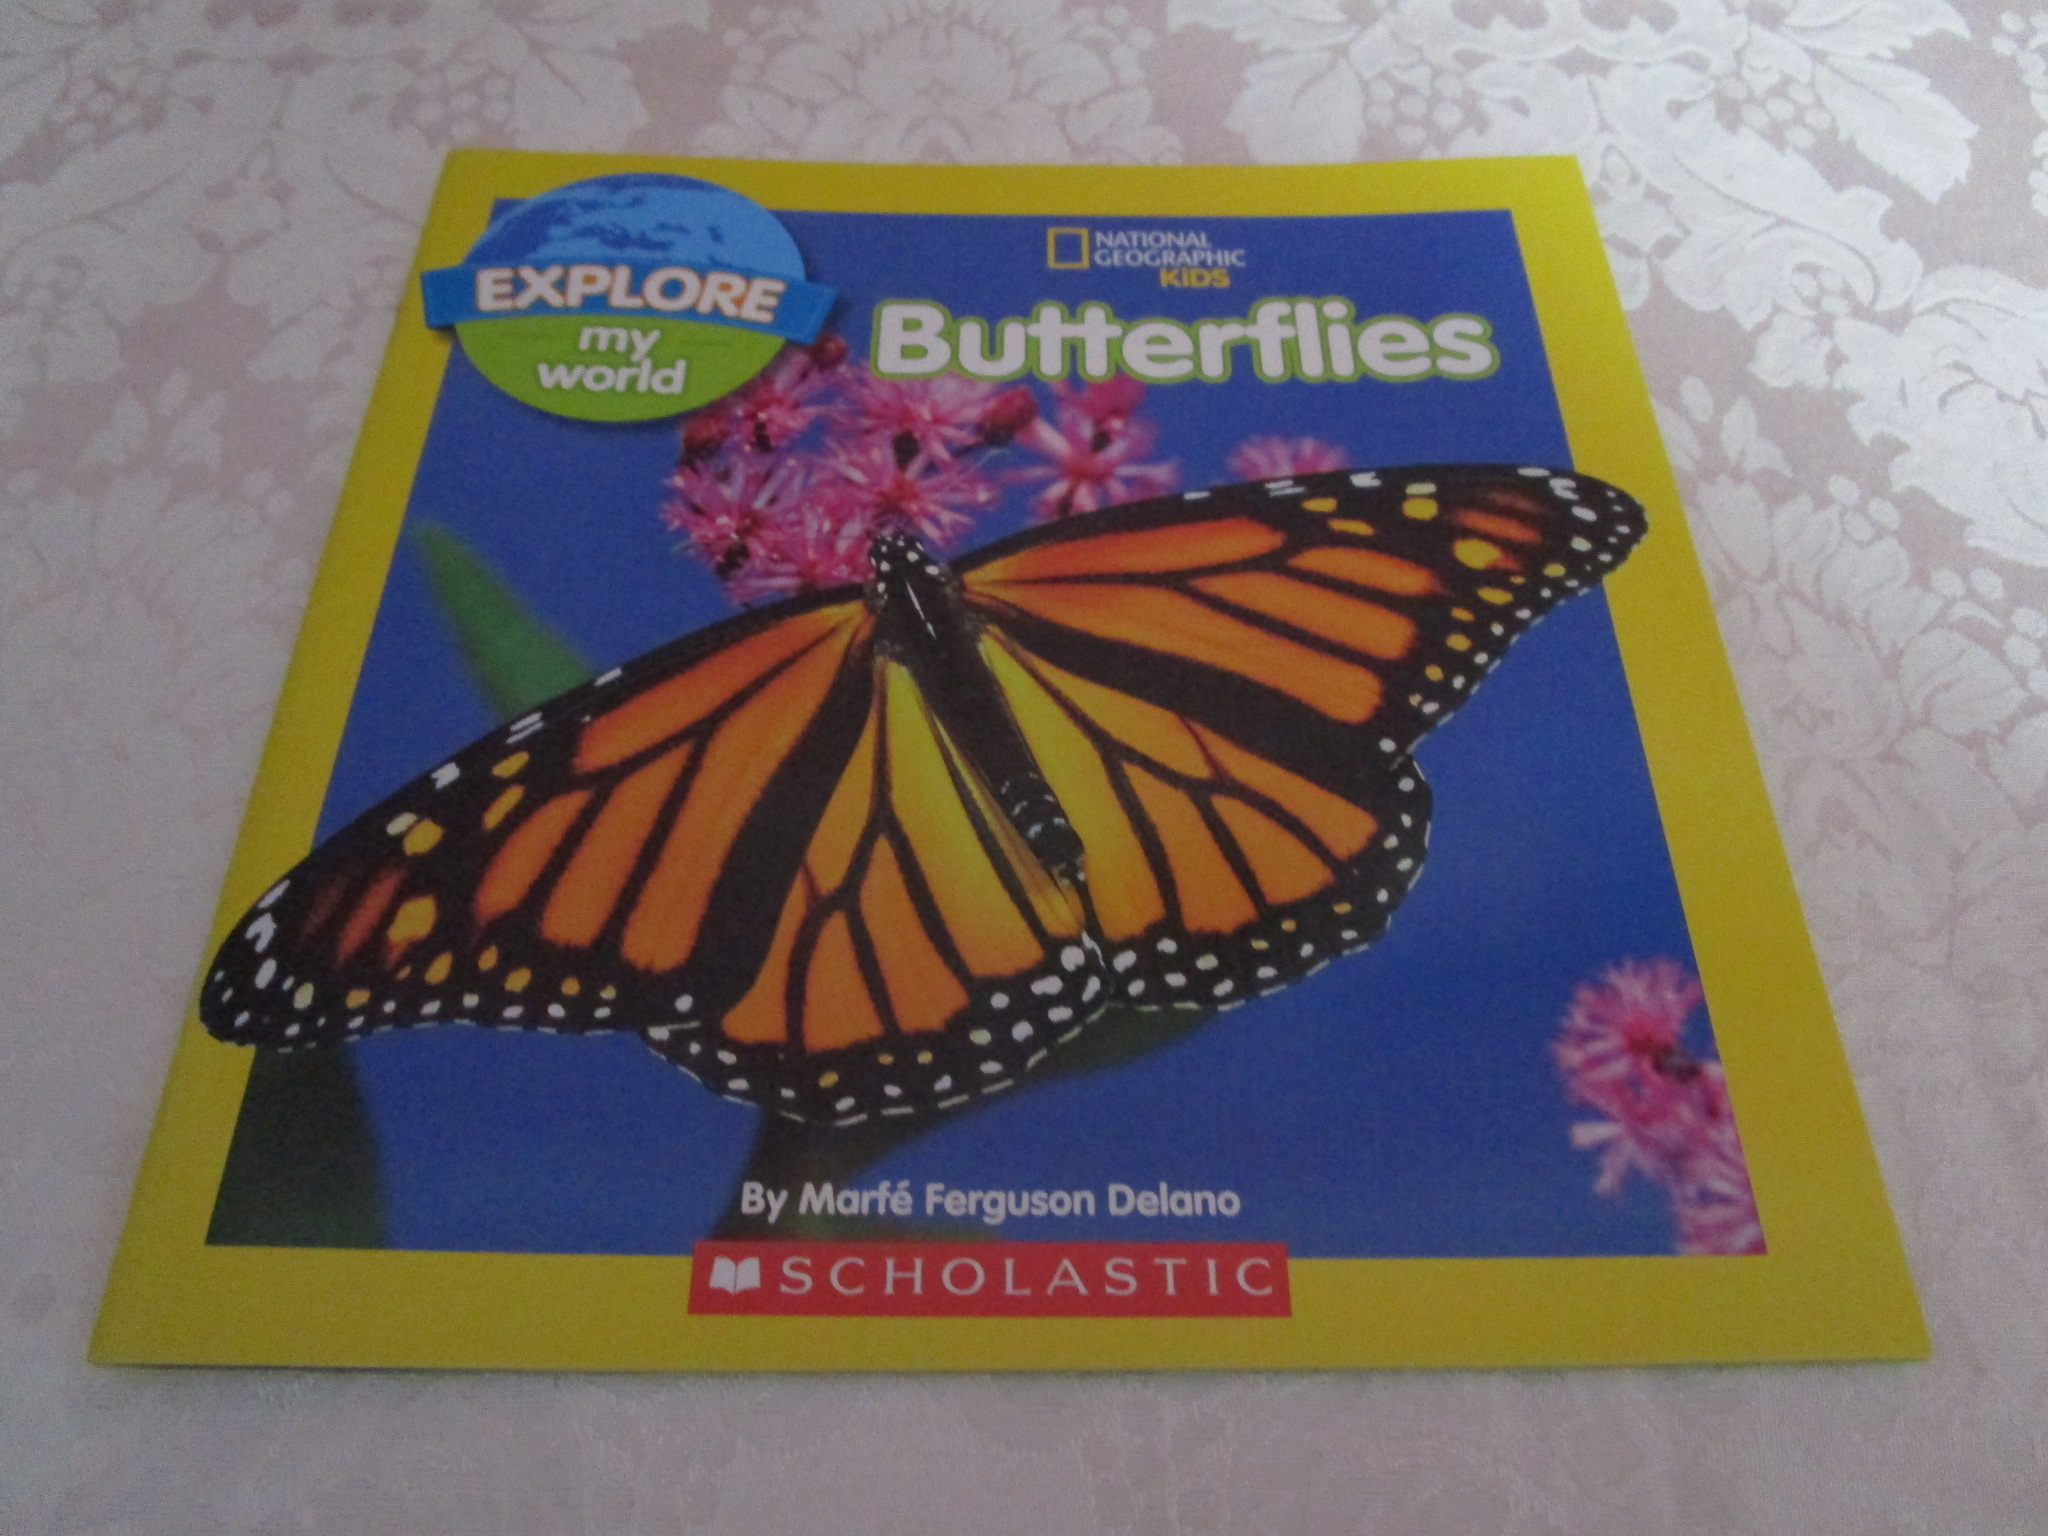 Butterflies Marfe Ferguson Delano National Geographic Kids Explore My World NEW